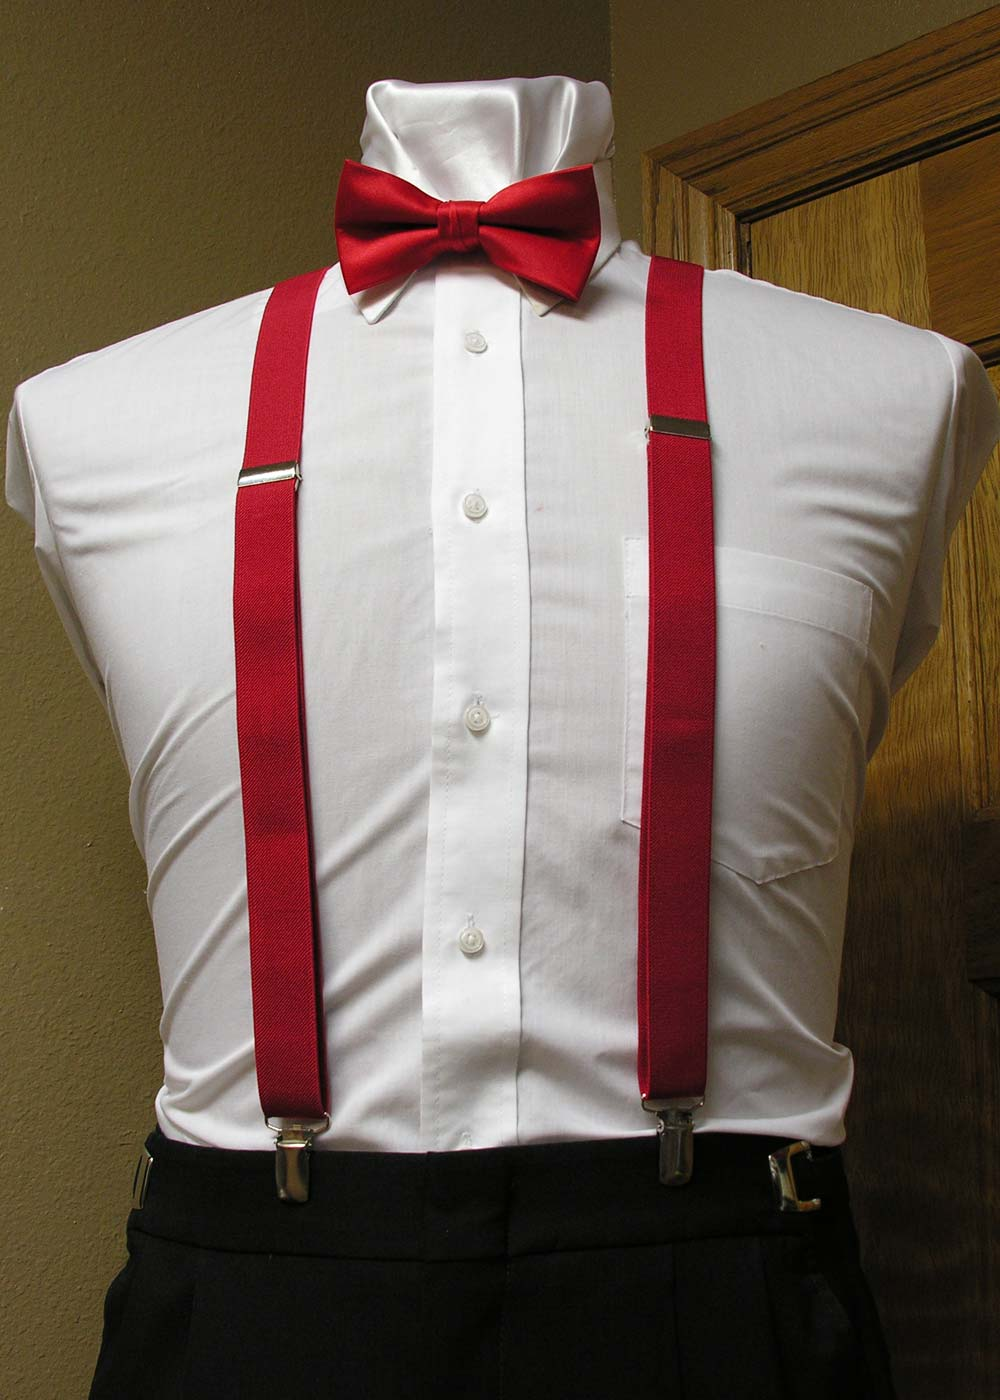 2146218982e4 Red Men's Suspender 1-Inch X Back With Red Pre-Tied Bow Tie Spencer J's  Collection